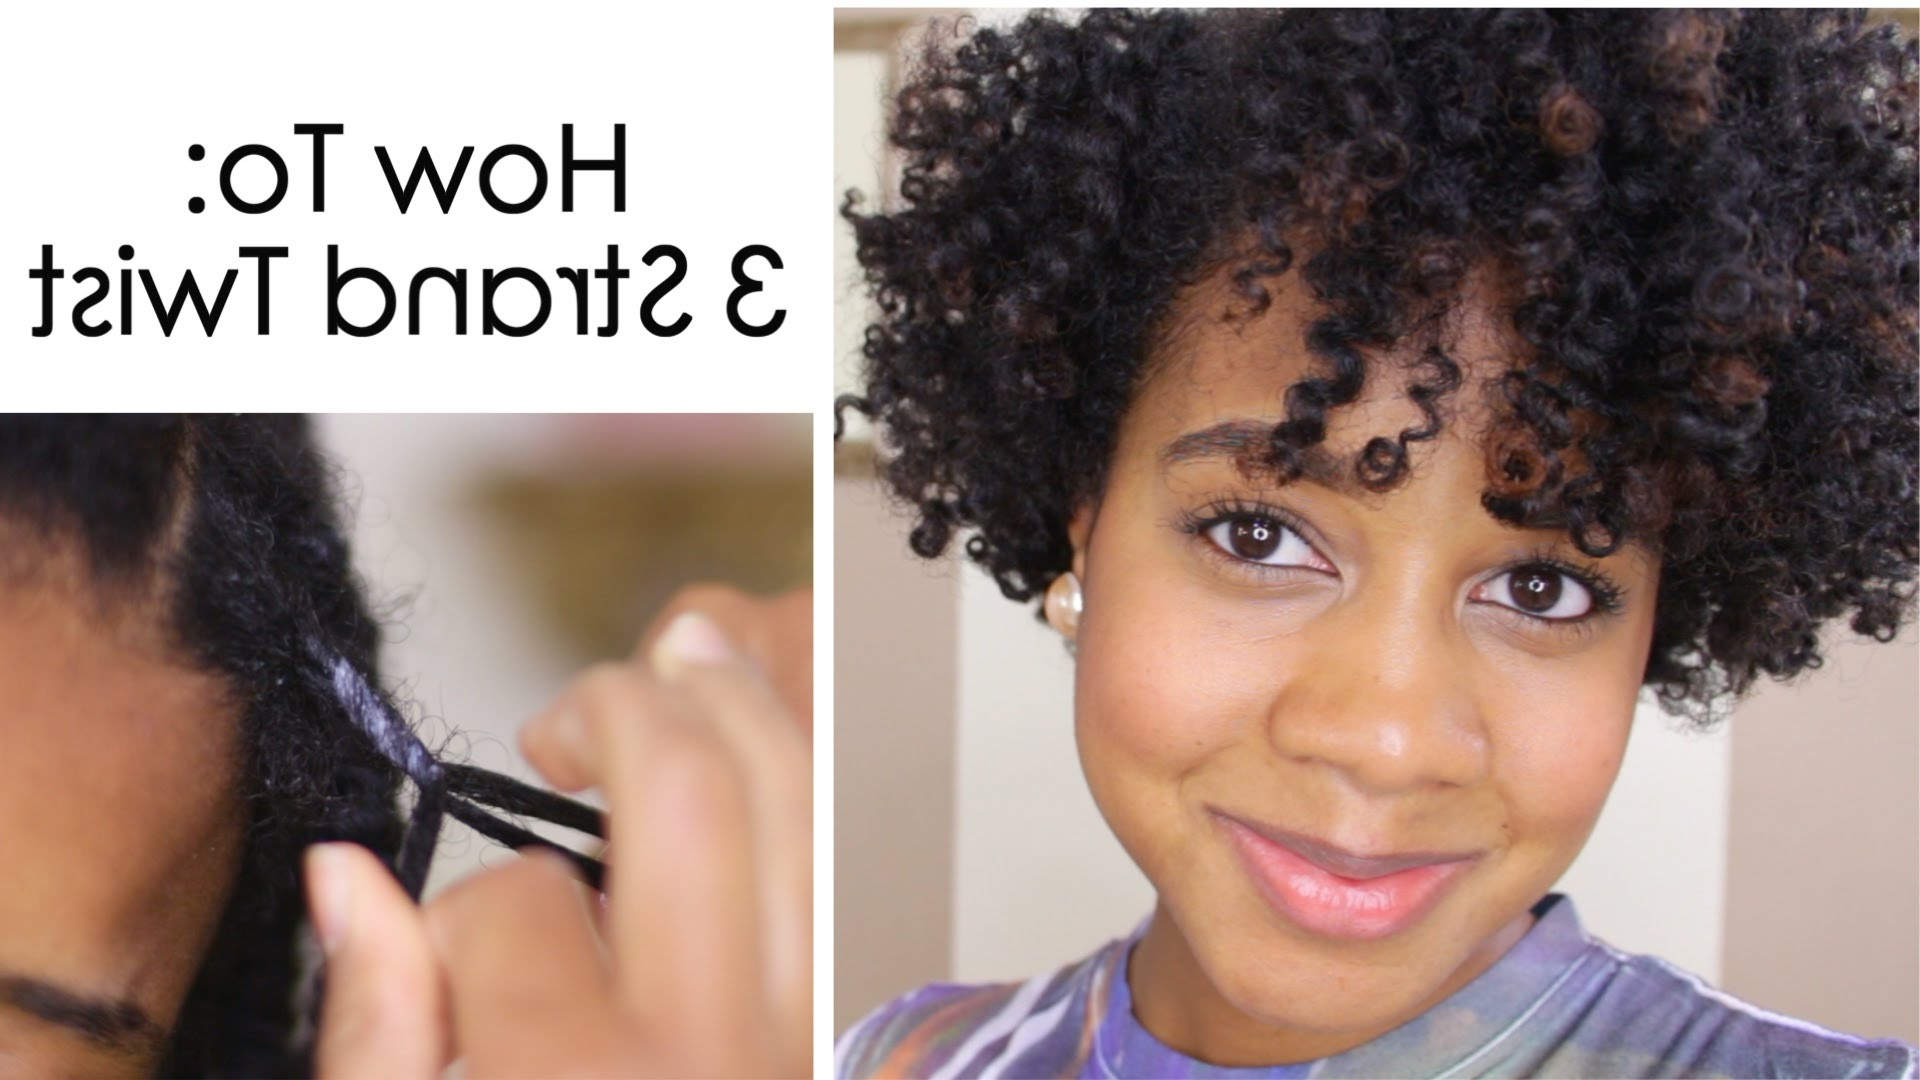 Natural Hairstyles For Short 4C Hair | All Hairstyles With 4C Short Hairstyles (View 21 of 25)